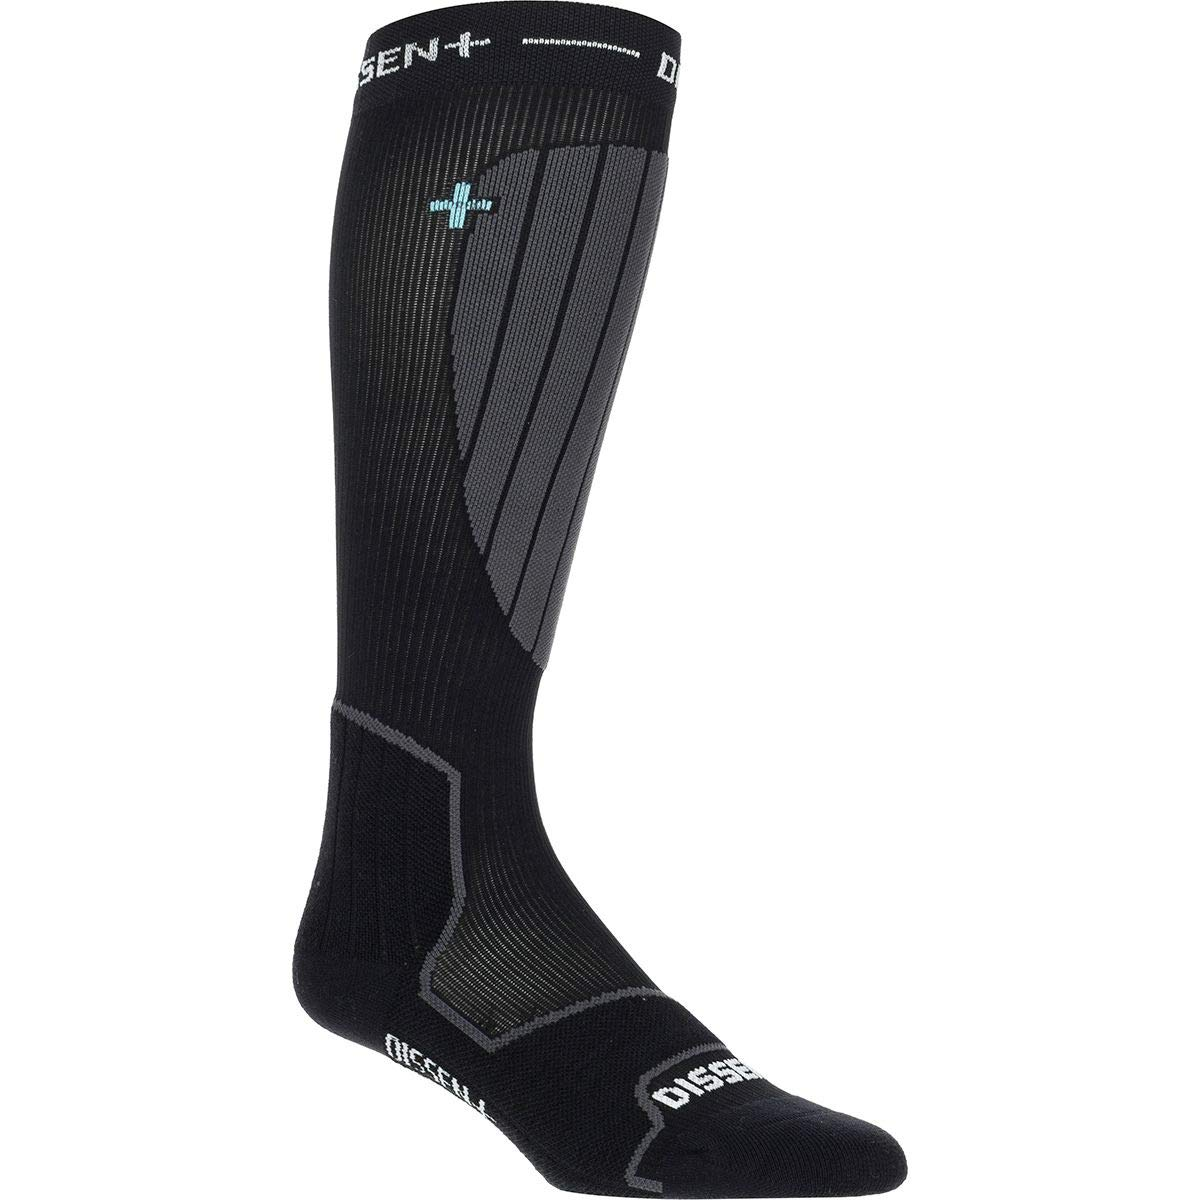 Dissent Ski GFX Compression Hybrid DLX-Wool Sock One Color, S by Dissent (Image #1)